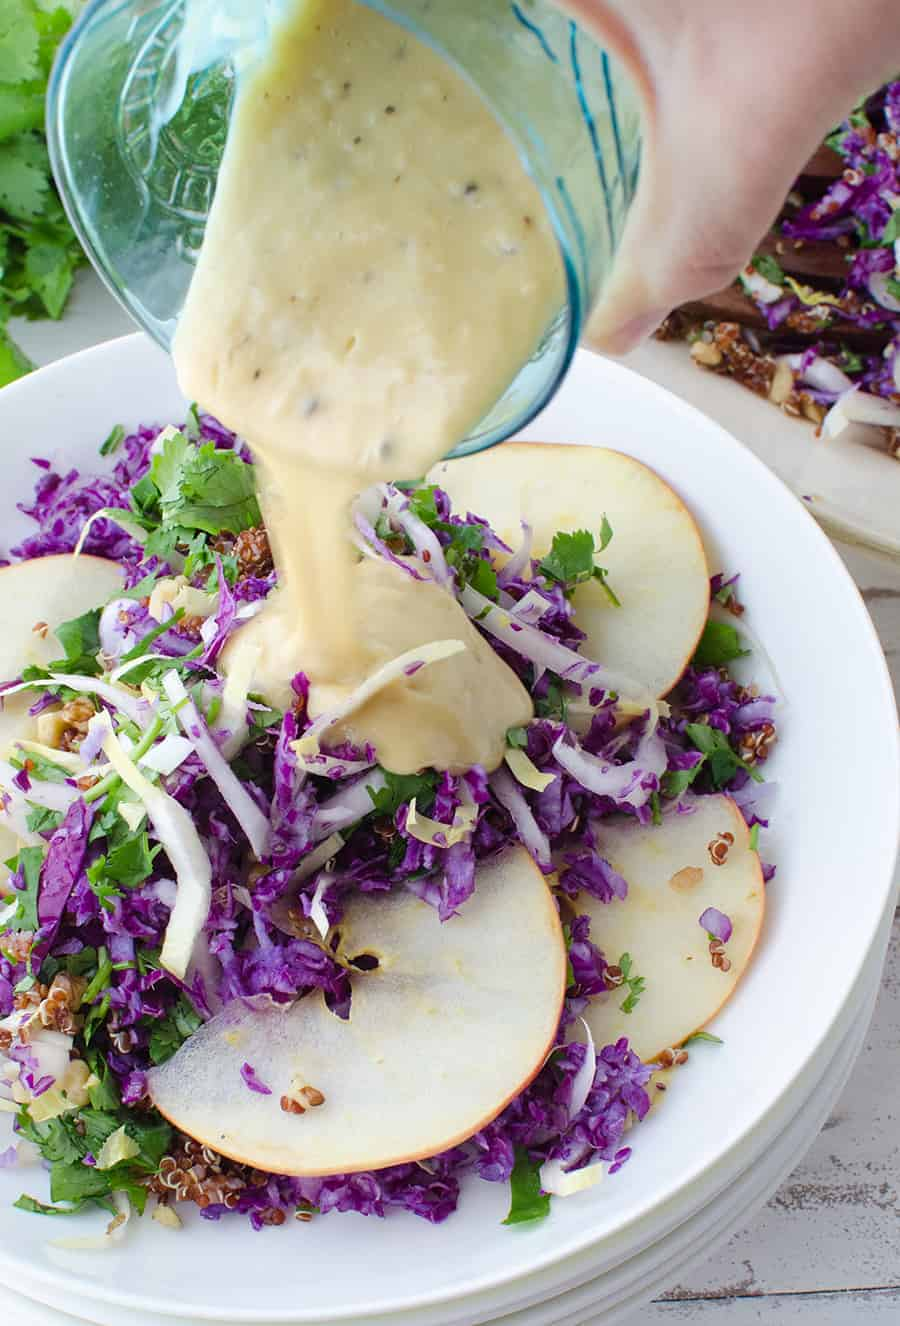 Winter Slaw! So, so good! Cabbage, Endive, Apples, Parsley, Walnut and Quinoa is a lemony-tahini sauce. Such a healthy side dish or main | www.delishknowledge.com